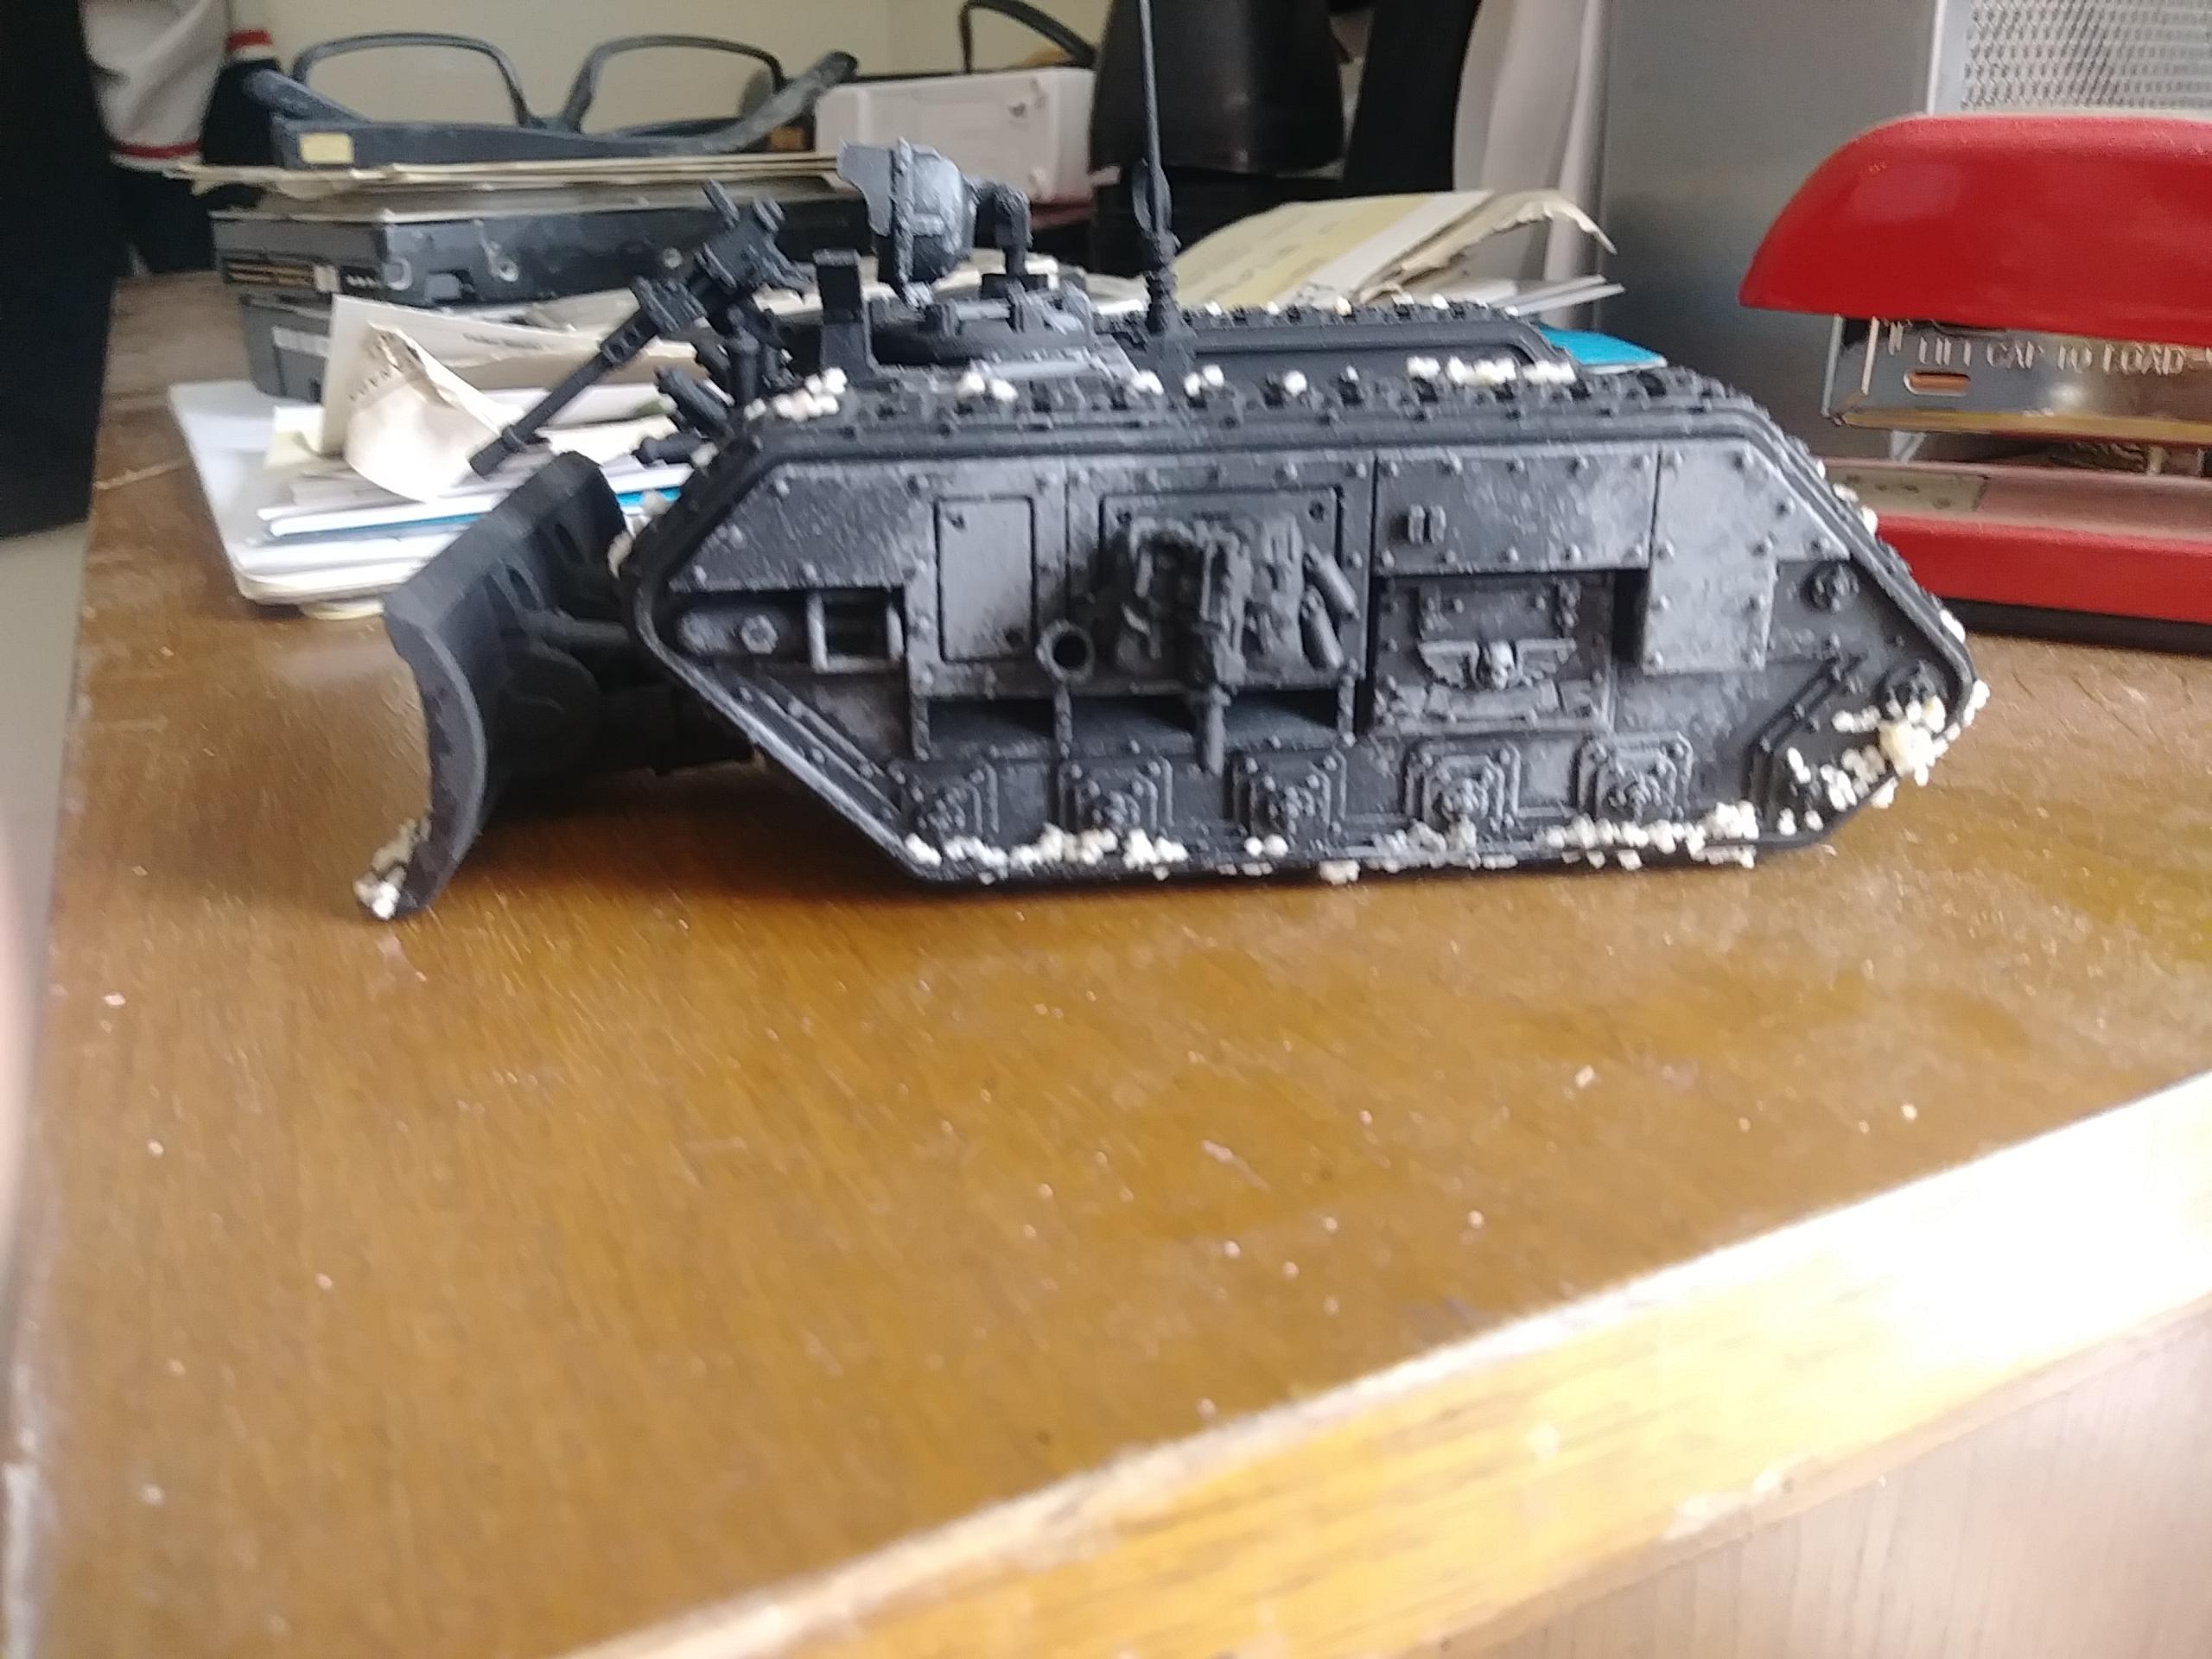 Artillery, Astra Militarum, Basilisk, Cadian Shock Troops, Cadians, Eastern Front, Guard, Heretics, Imperial, Imperial Guard, Kronstadt, Militia, Planetary Defence Force, Red Army, Renegades, Renegades And Heretics